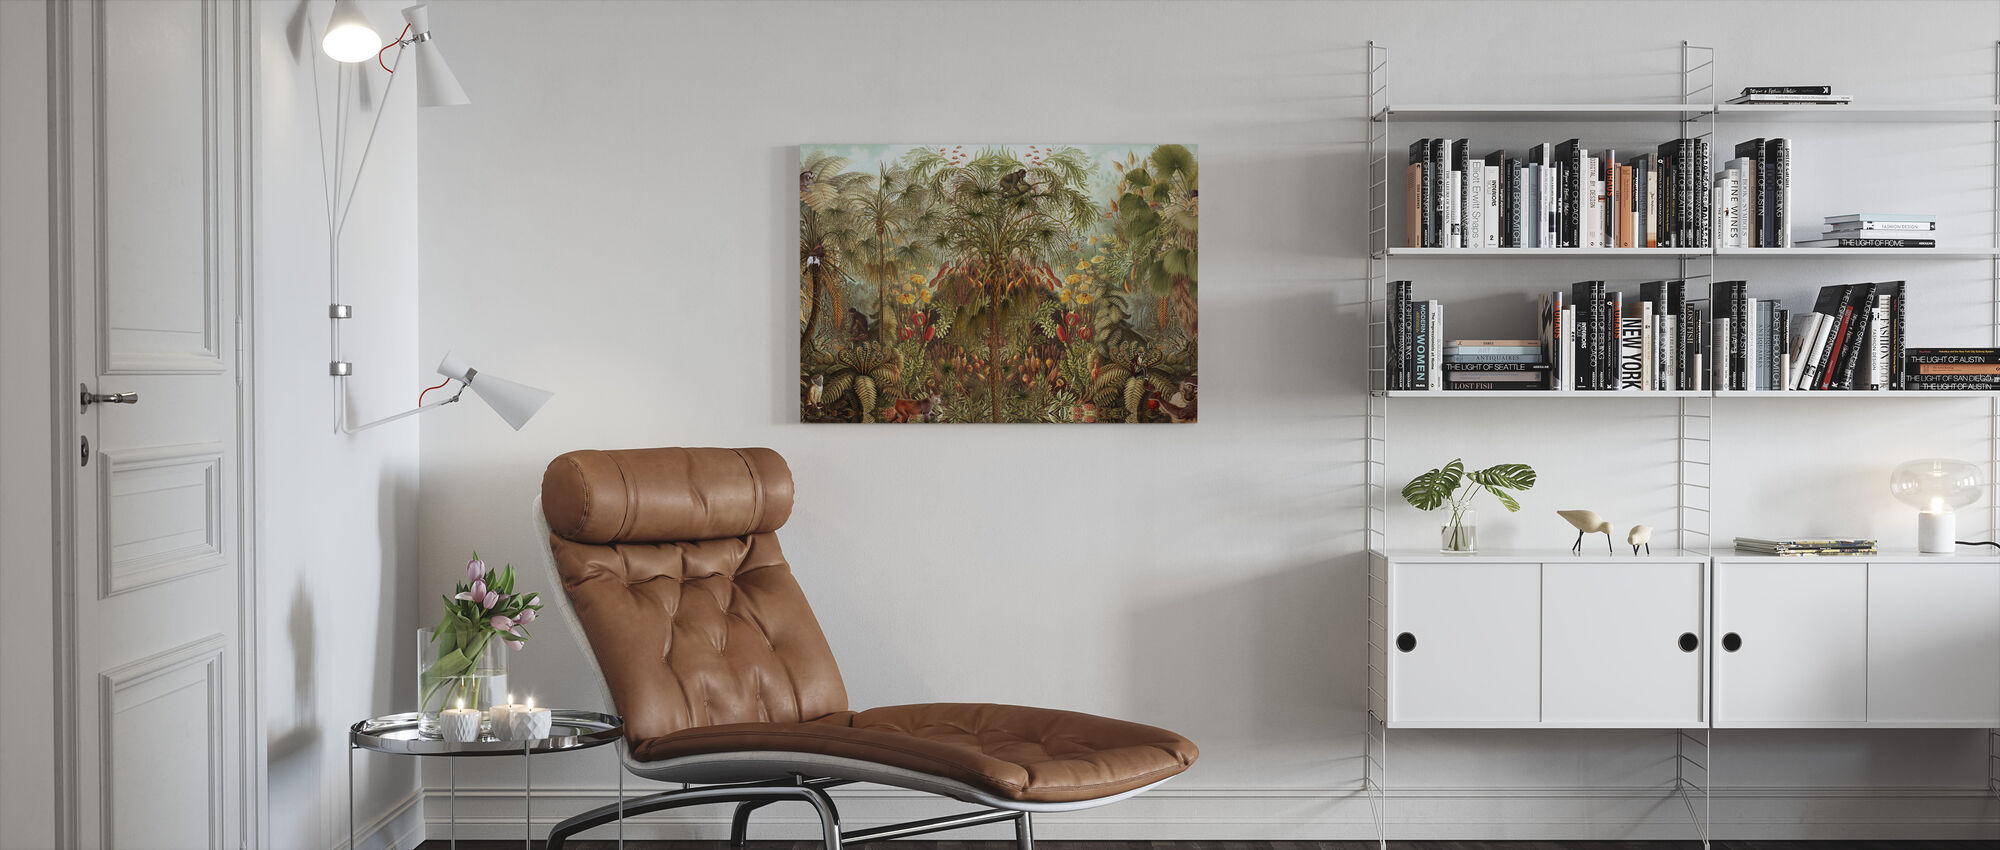 Monkey See Monkey Wah - Canvas print - Living Room